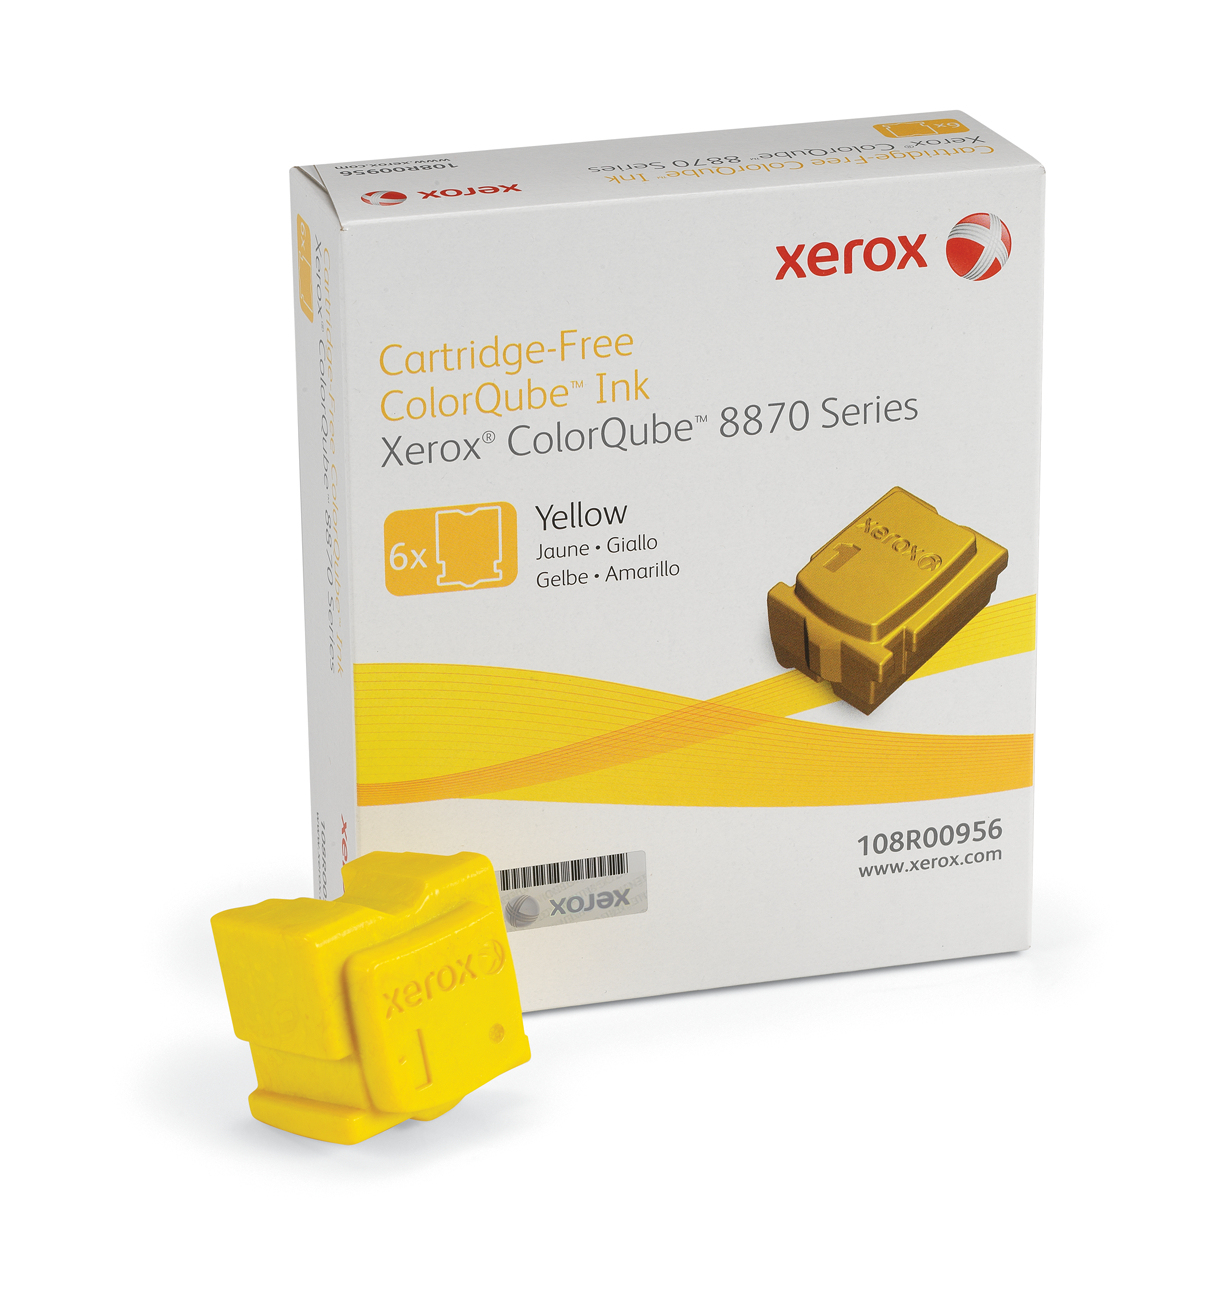 108r00956 xerox Xerox 8870 Yellow 6 Pk Wax Stick - AD01